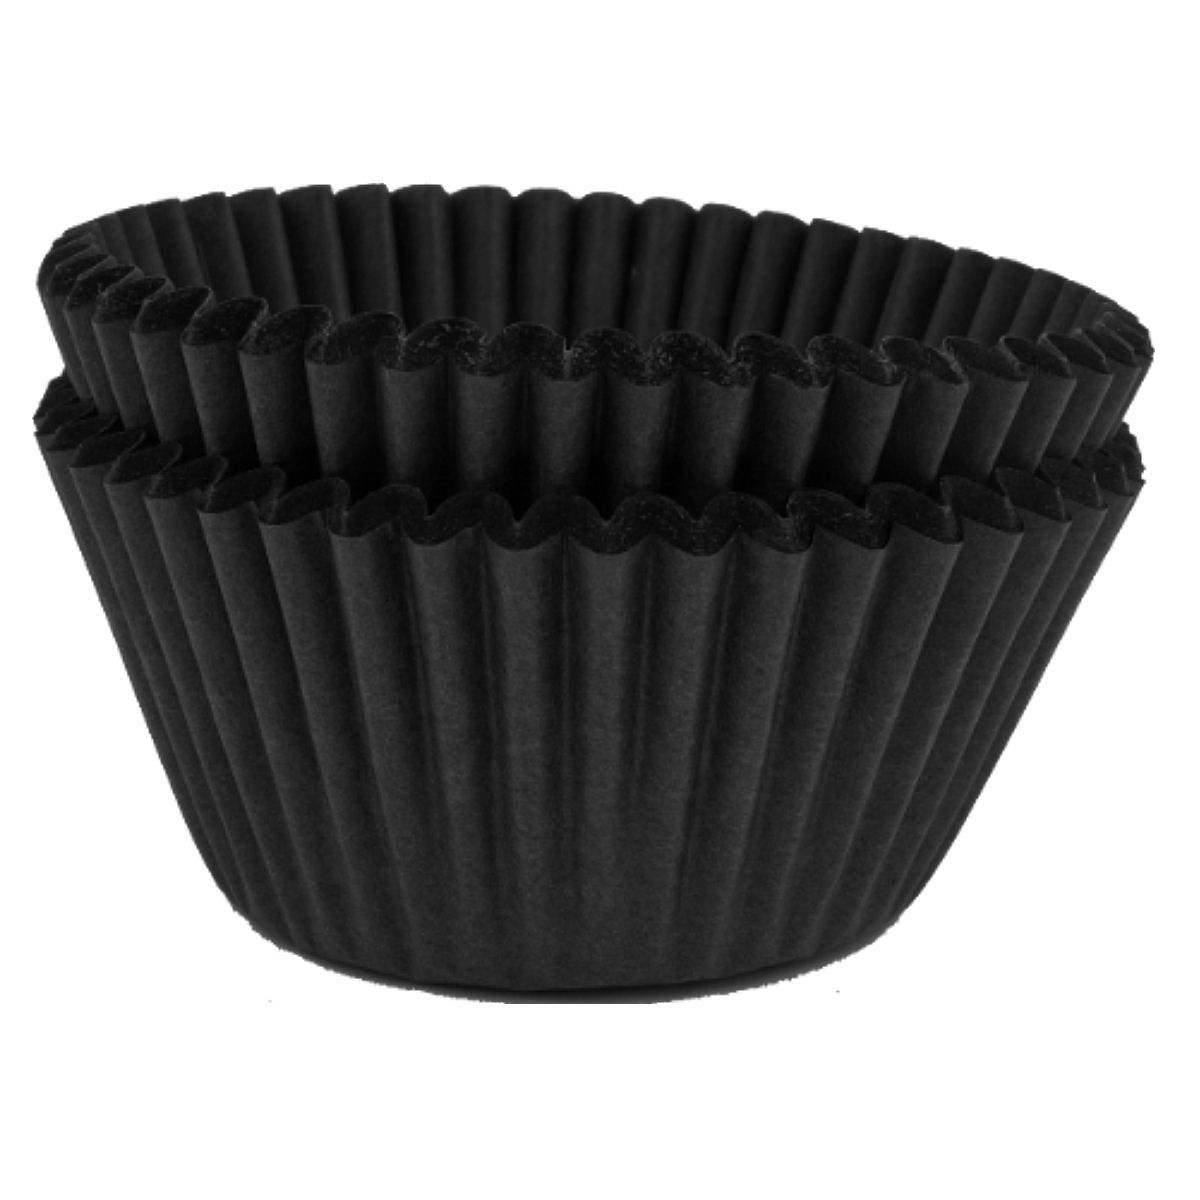 High Quality Paper Muffin, Cupcake Cases - Plain Black - Pack of 50 Cake Star